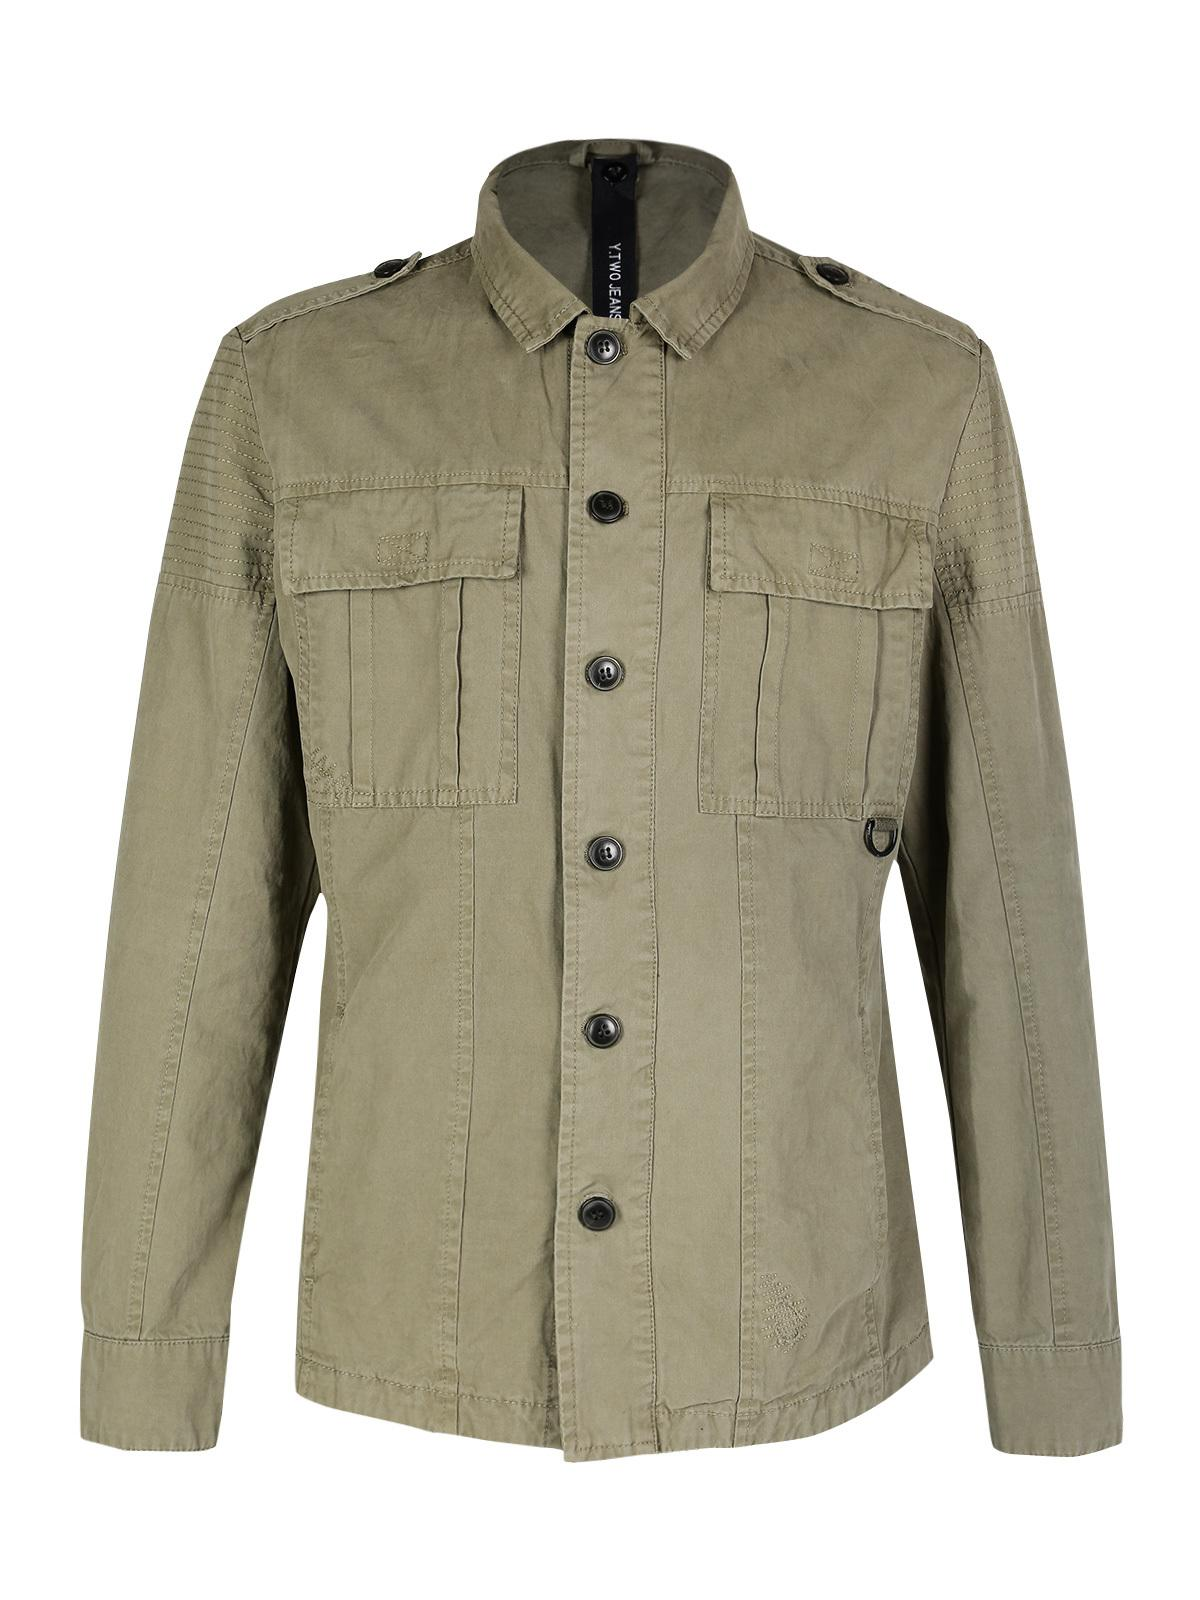 Giacca verde militare uomo y. two jeans | MecShopping